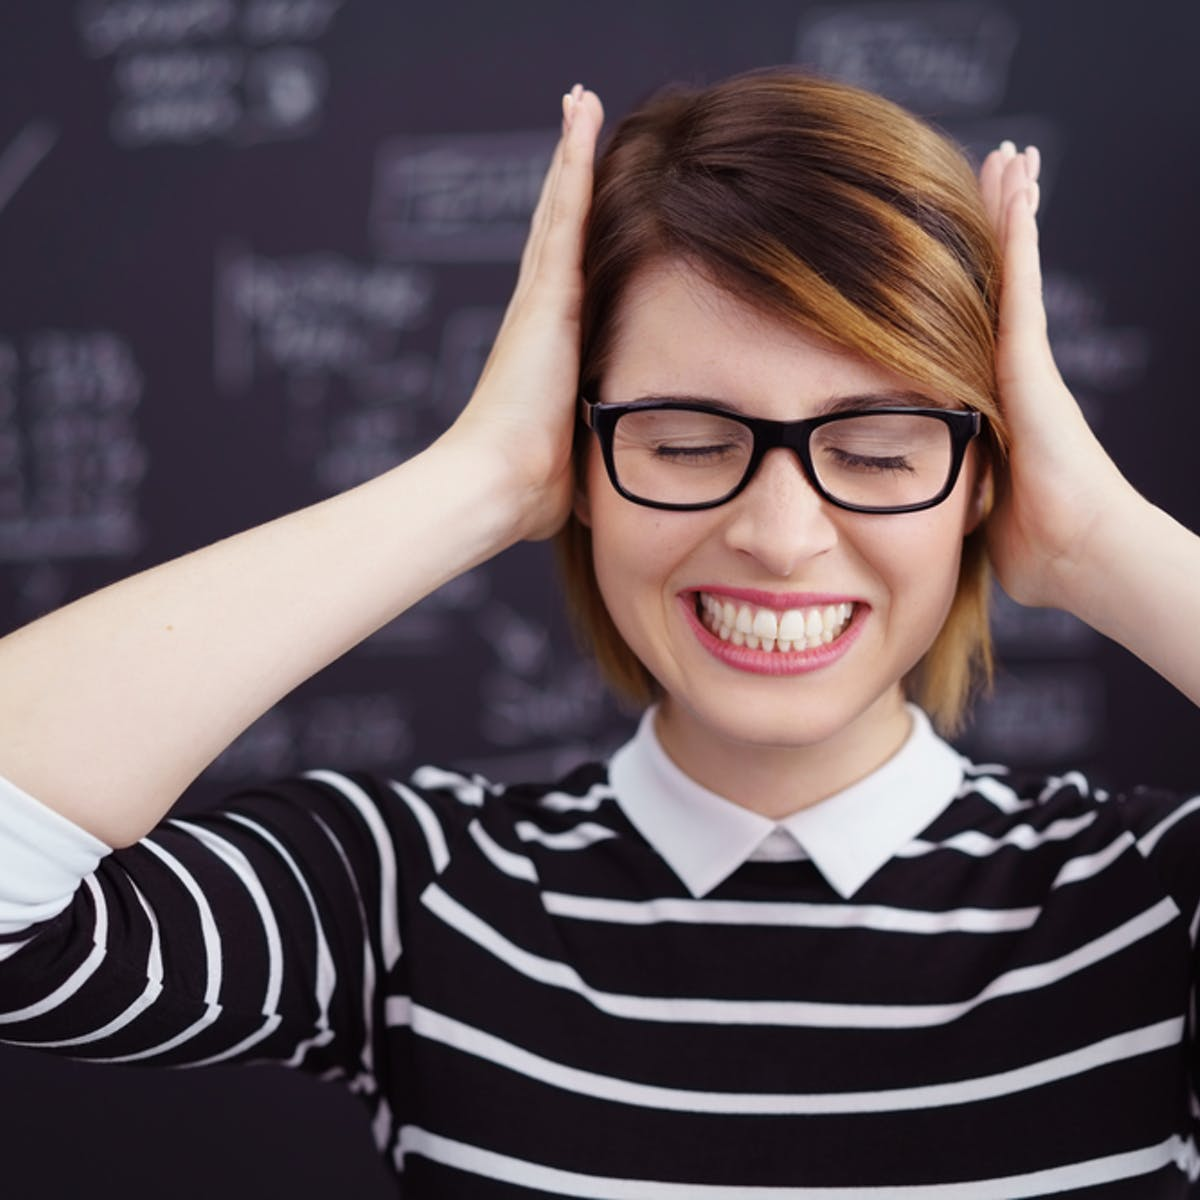 Misophonia – when certain sounds drive you crazy